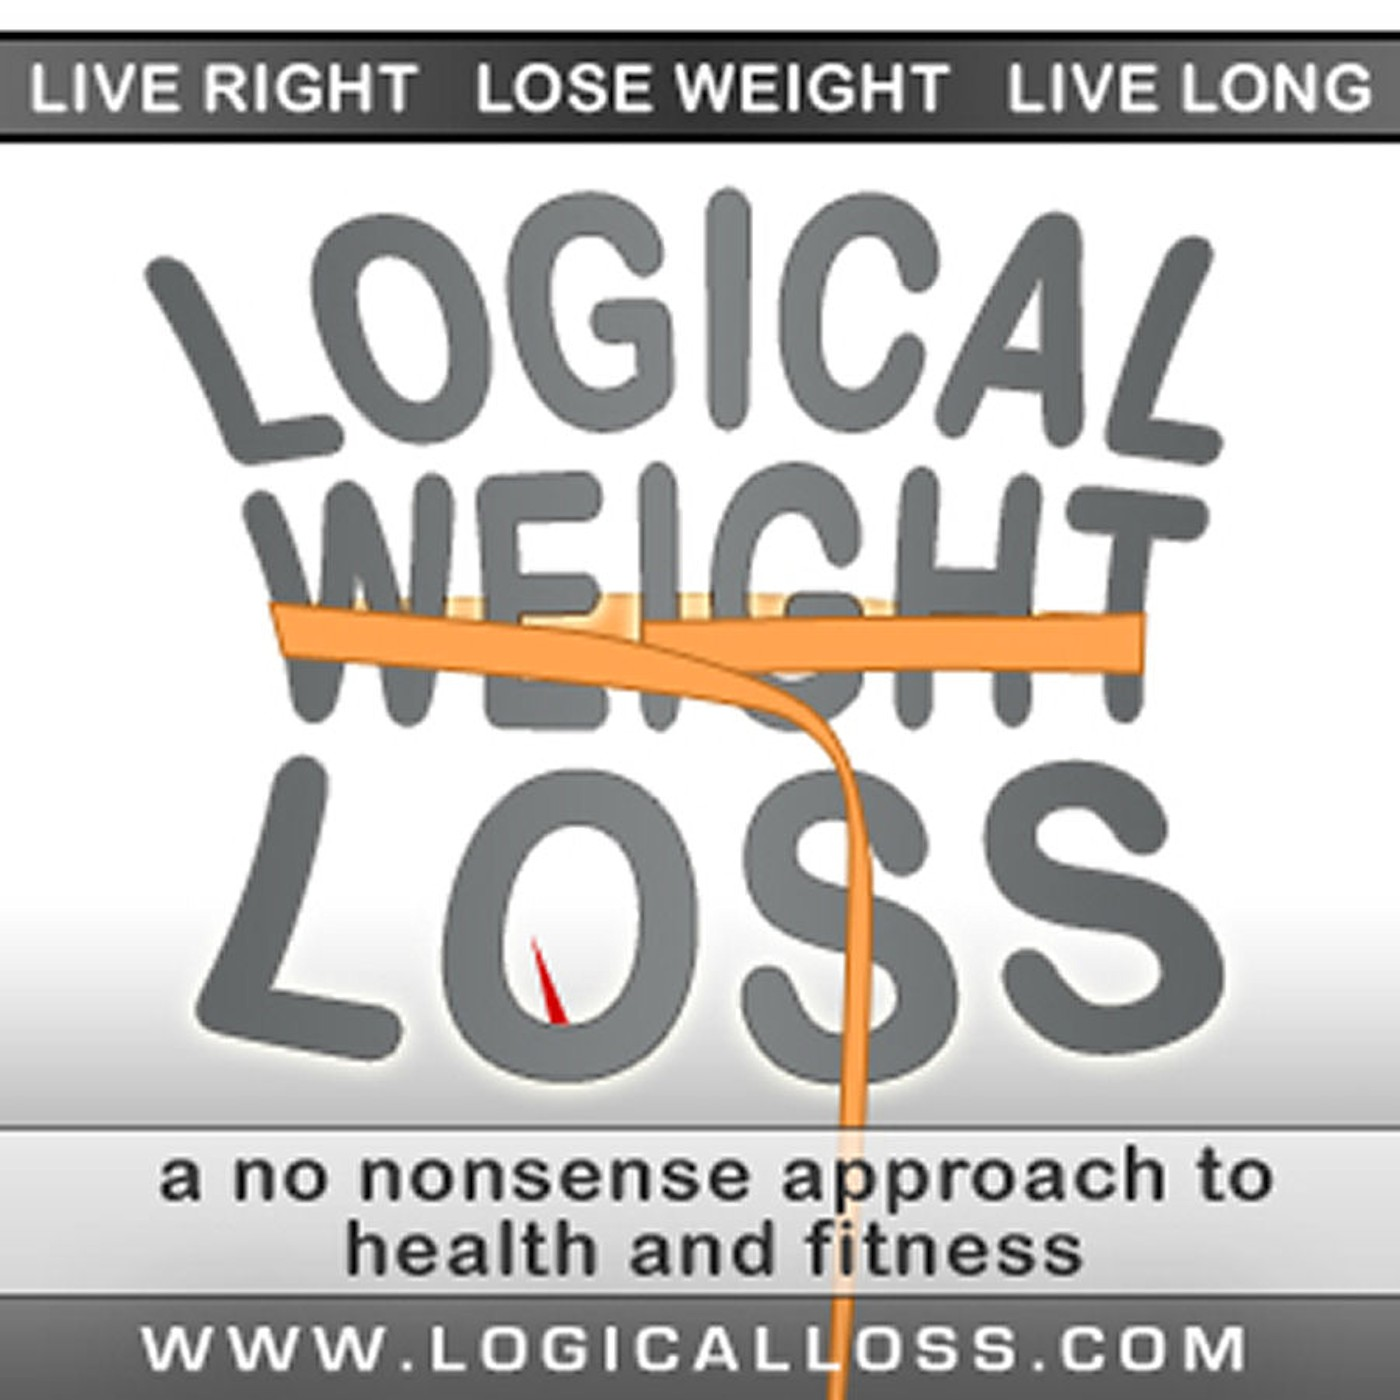 Committed to Weight Loss: Are You Really?